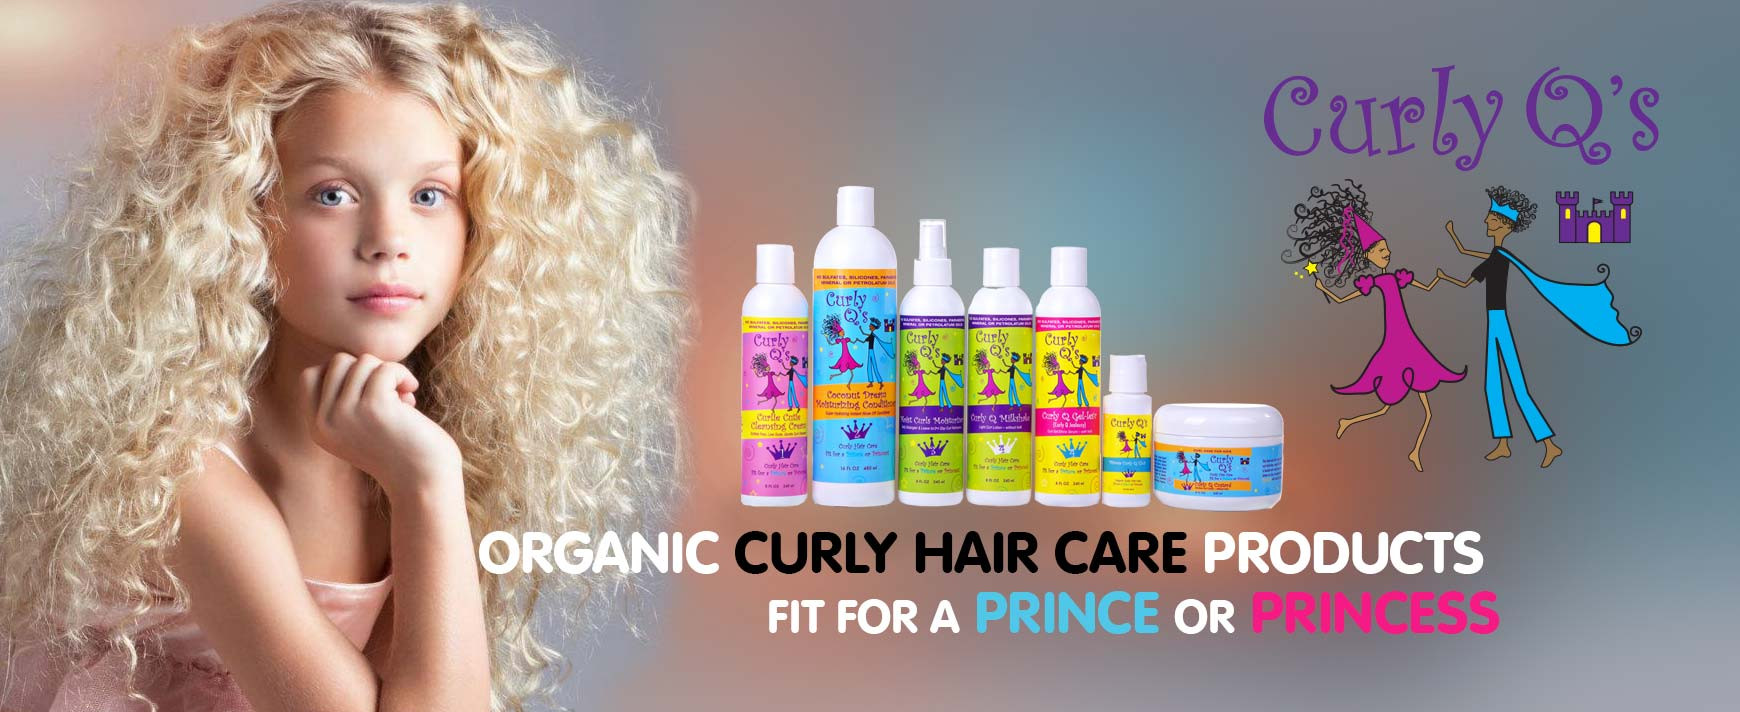 Hair Care For Kids  Caring For Curly Kids Hair This Fall With CURLS Curly Q's